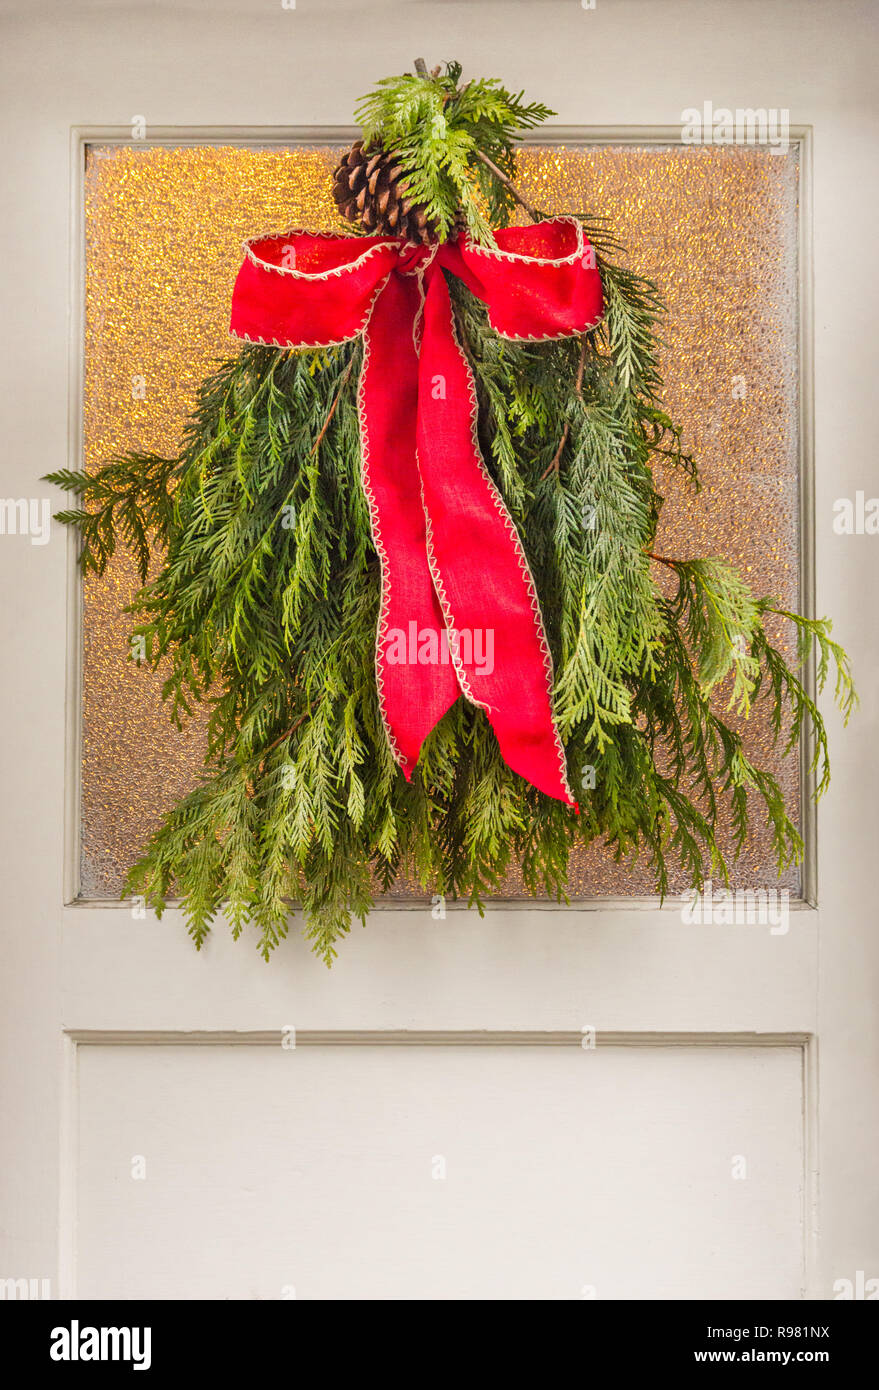 Vintage Style Red Bow Tied To Natural Green Evergreen Tree Christmas  Wreath, Hanging On Window Pane In Old Antique White Painted Antique Door.